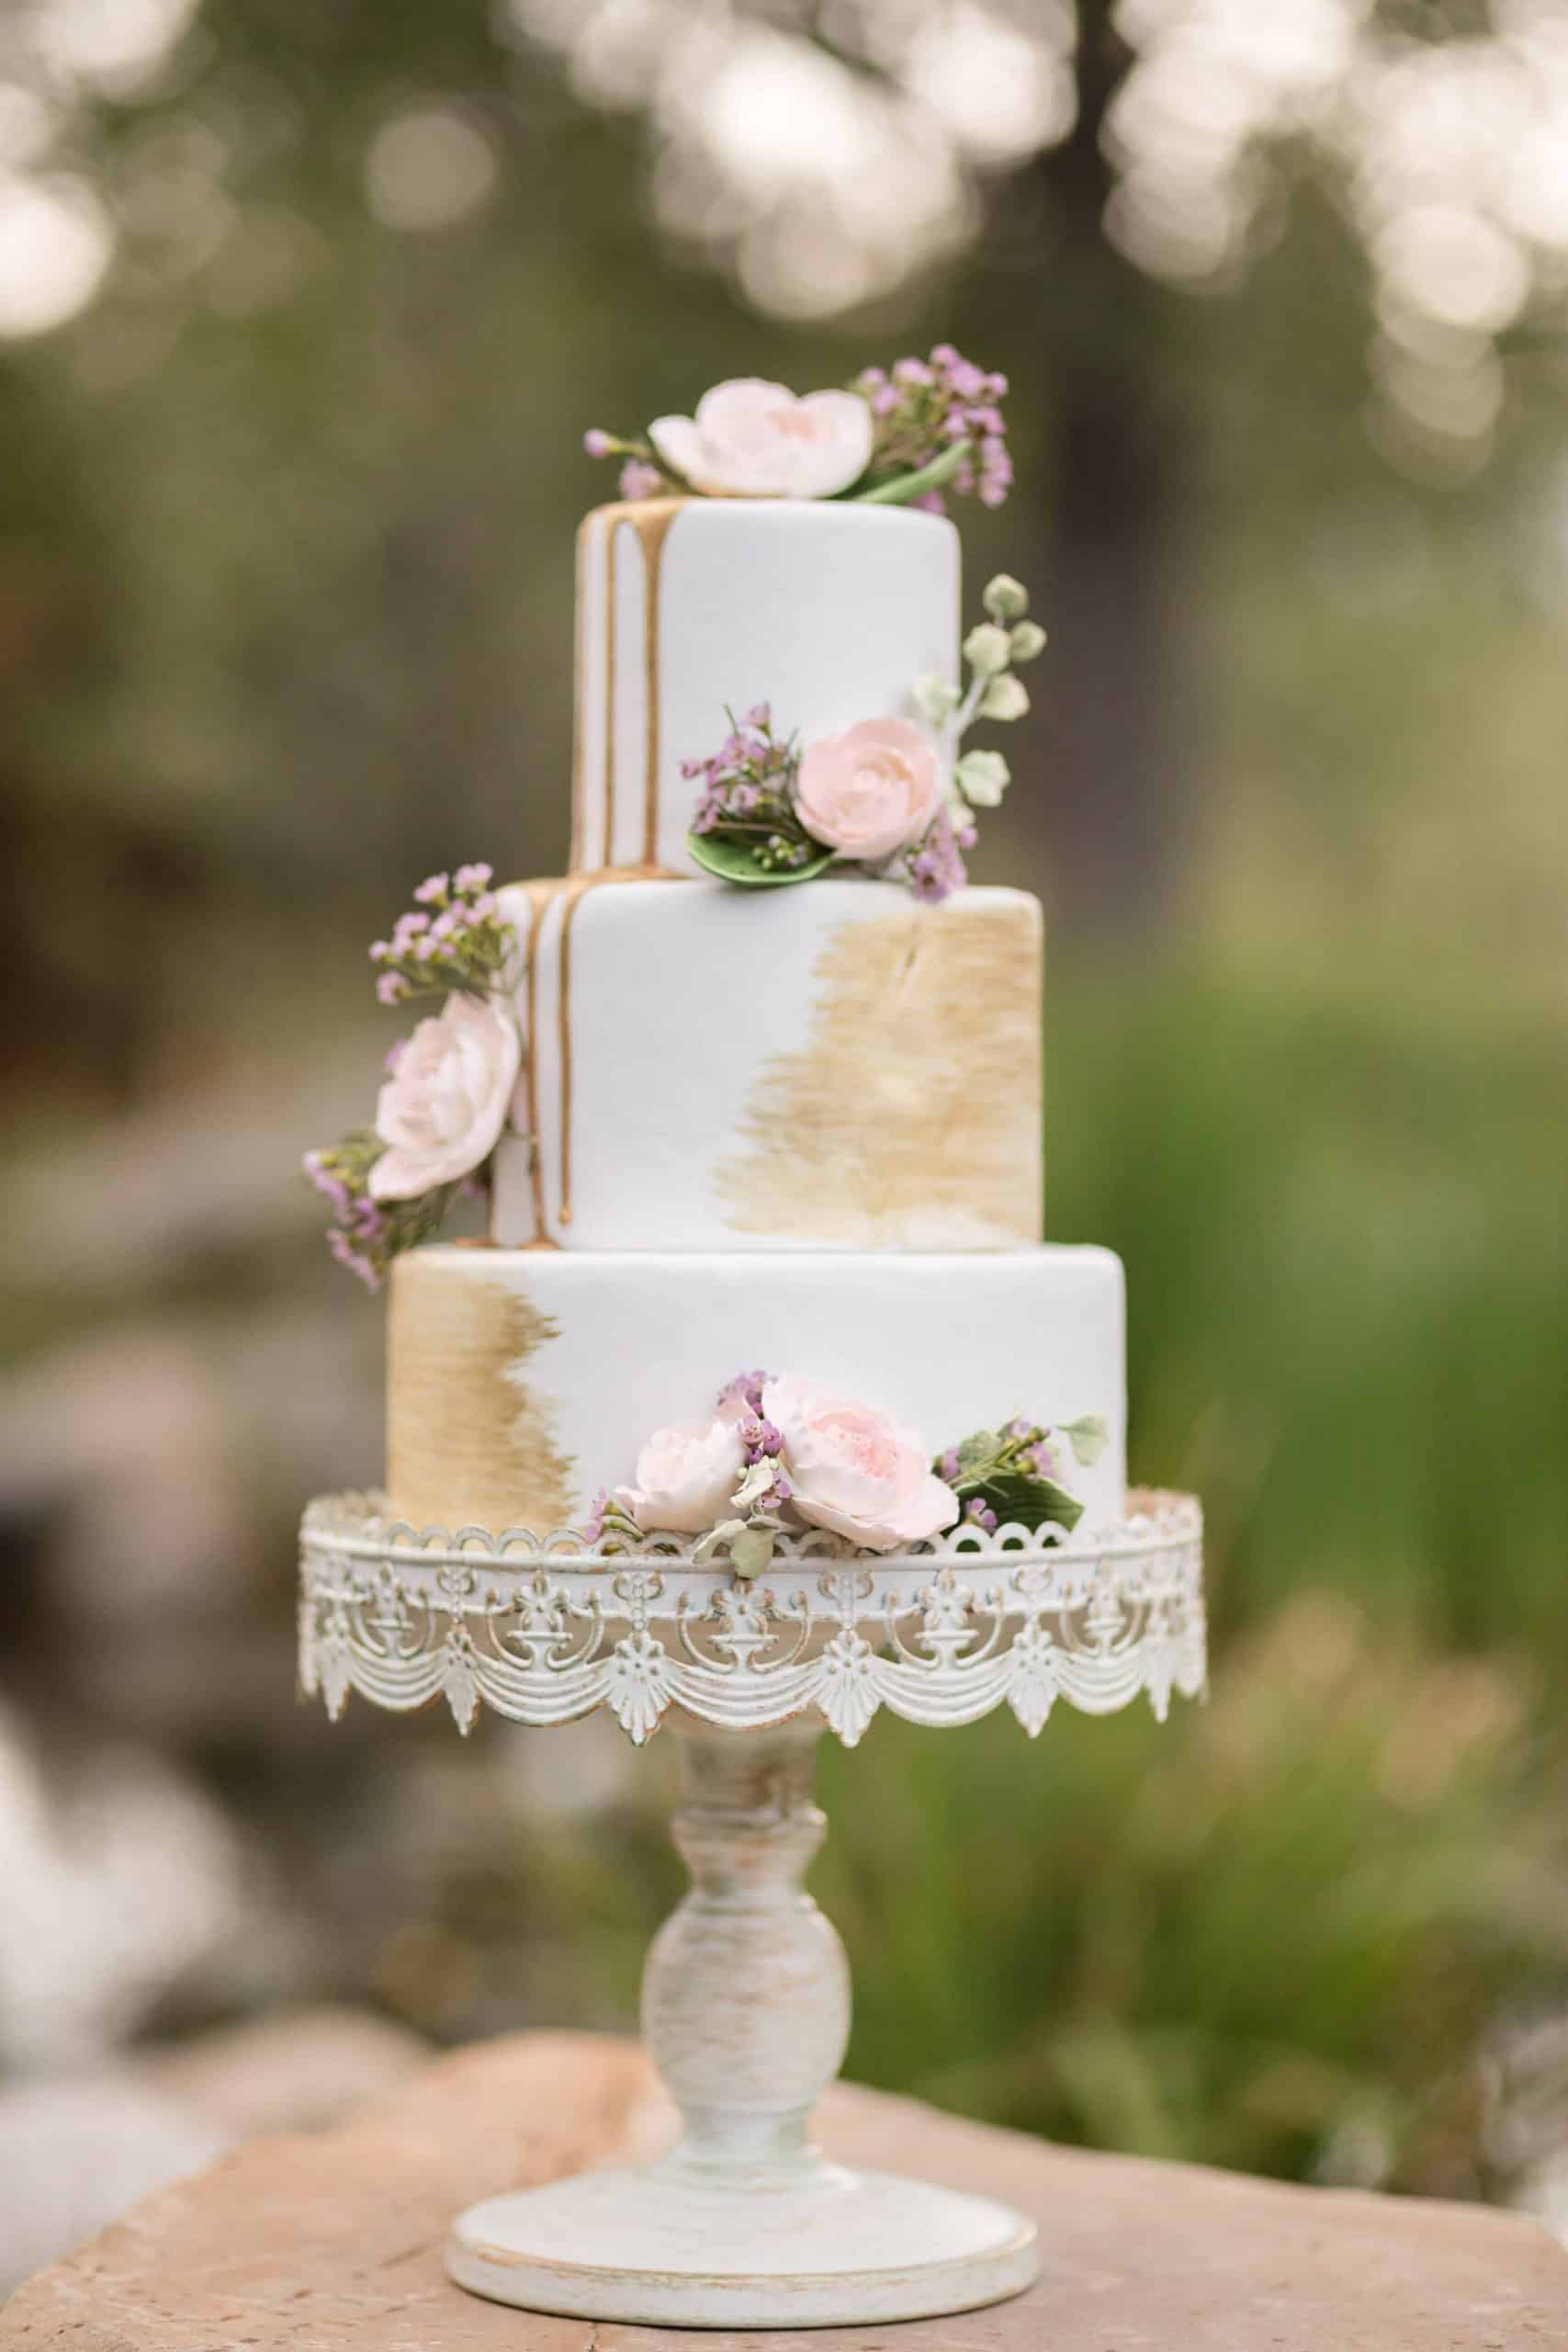 Gold Drip Wedding Cake with Vintage Stand